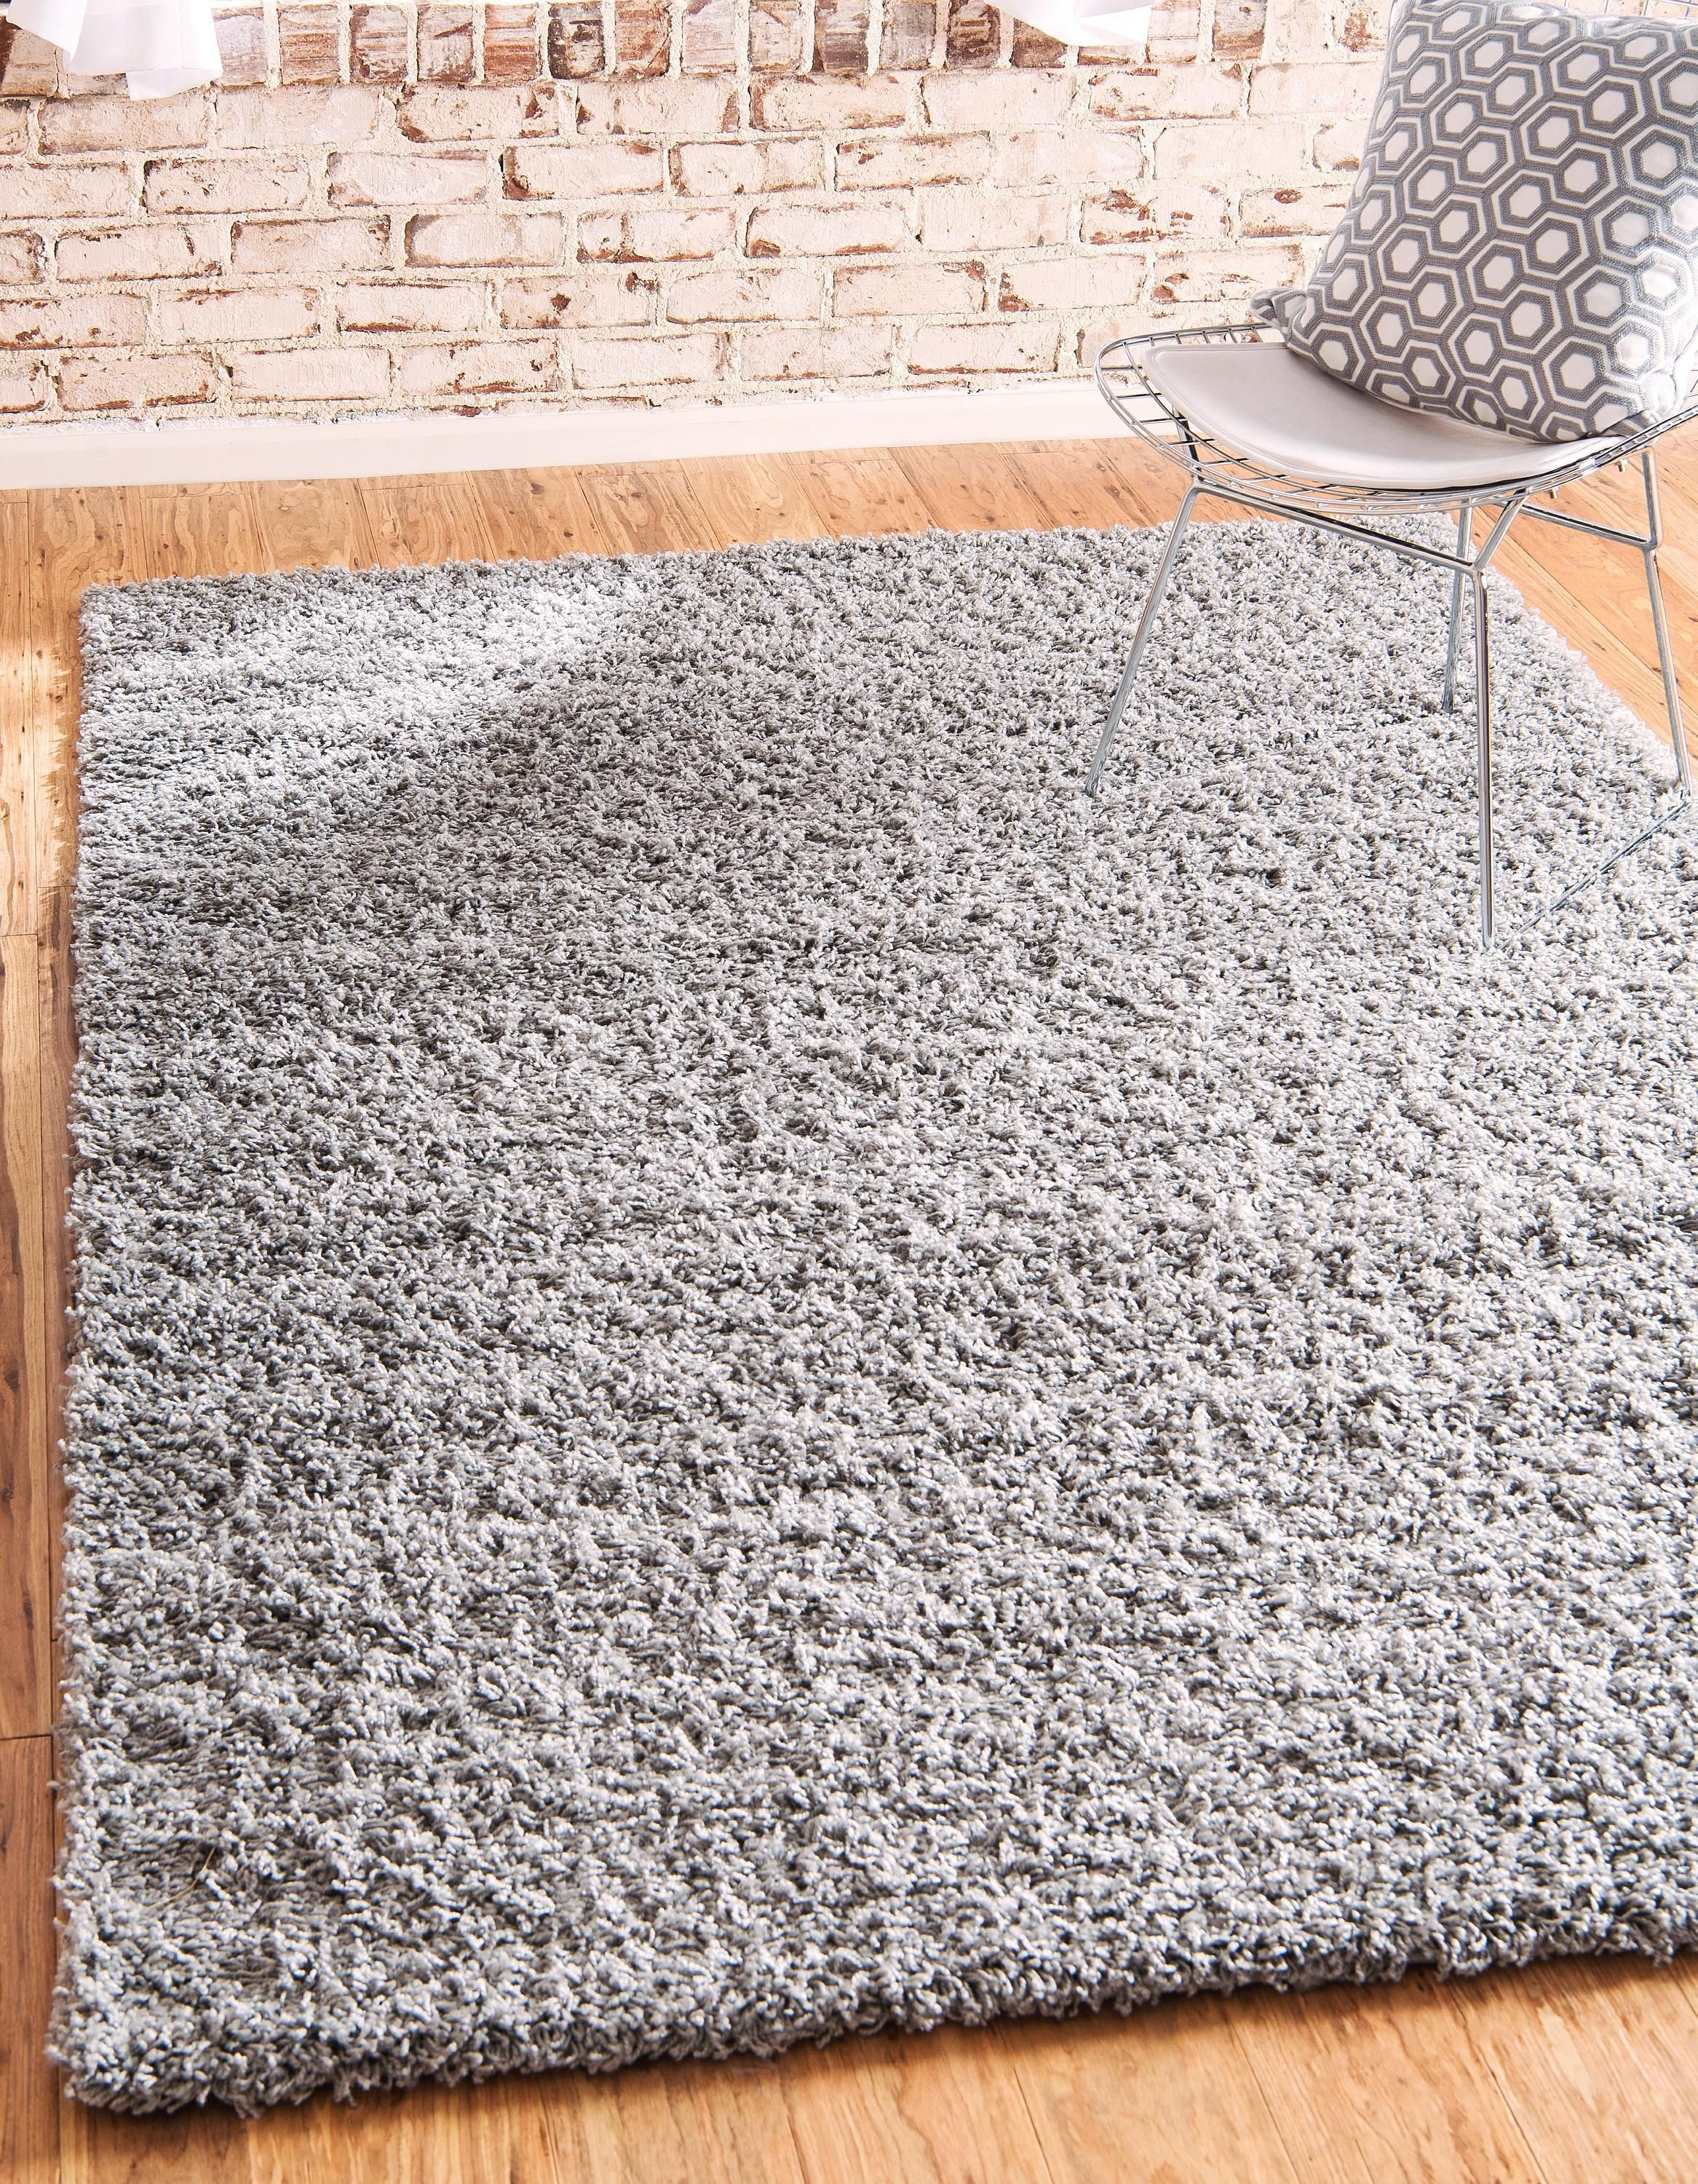 Cloud Gray 8 X 10 Solid Shag Rug Area Rugs Esalerugs Plush Area Rugs Rugs Area Rugs